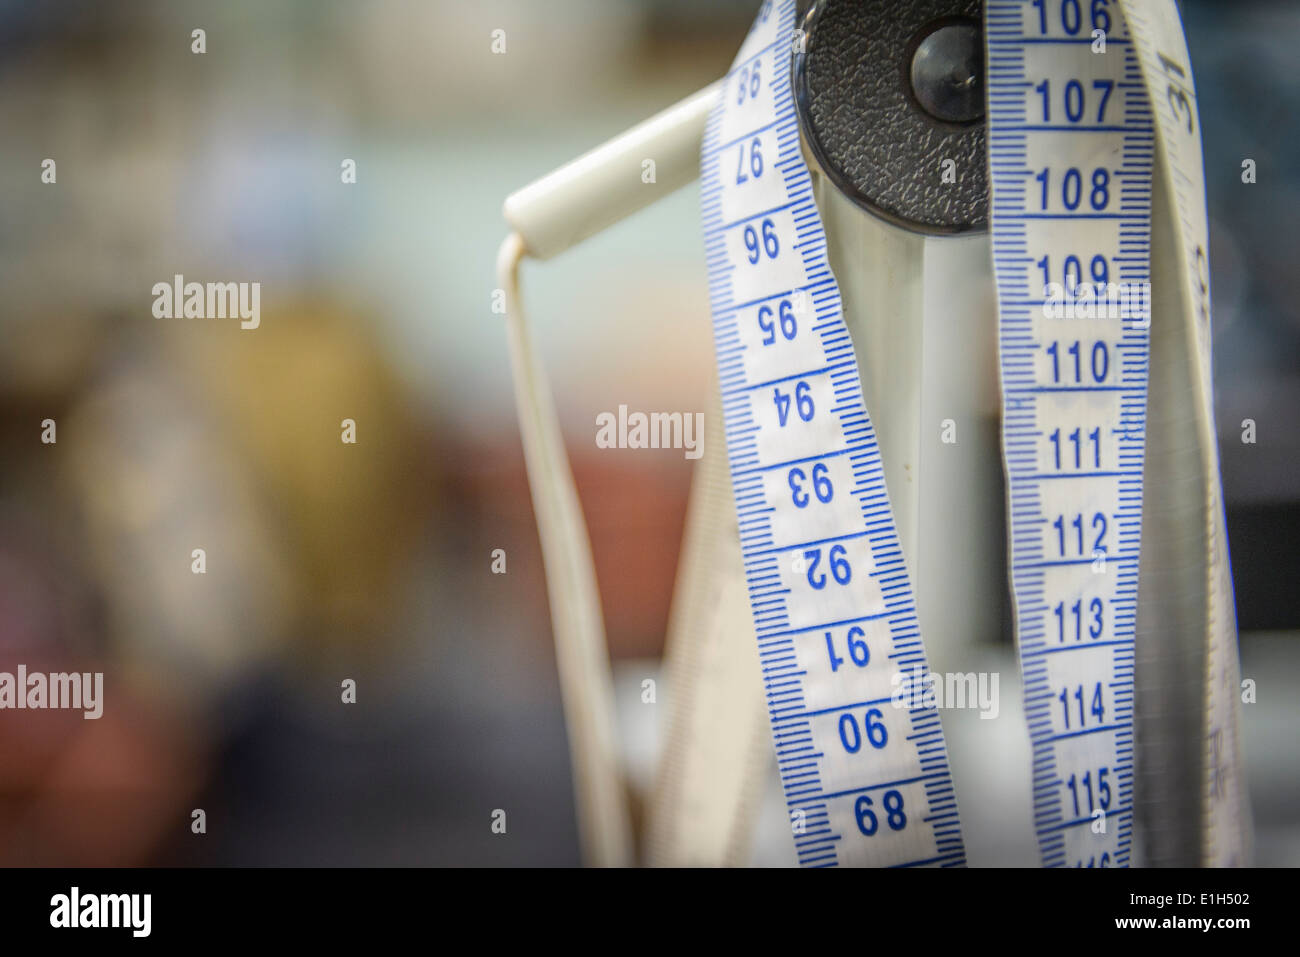 Tape measure in clothing factory, close up - Stock Image